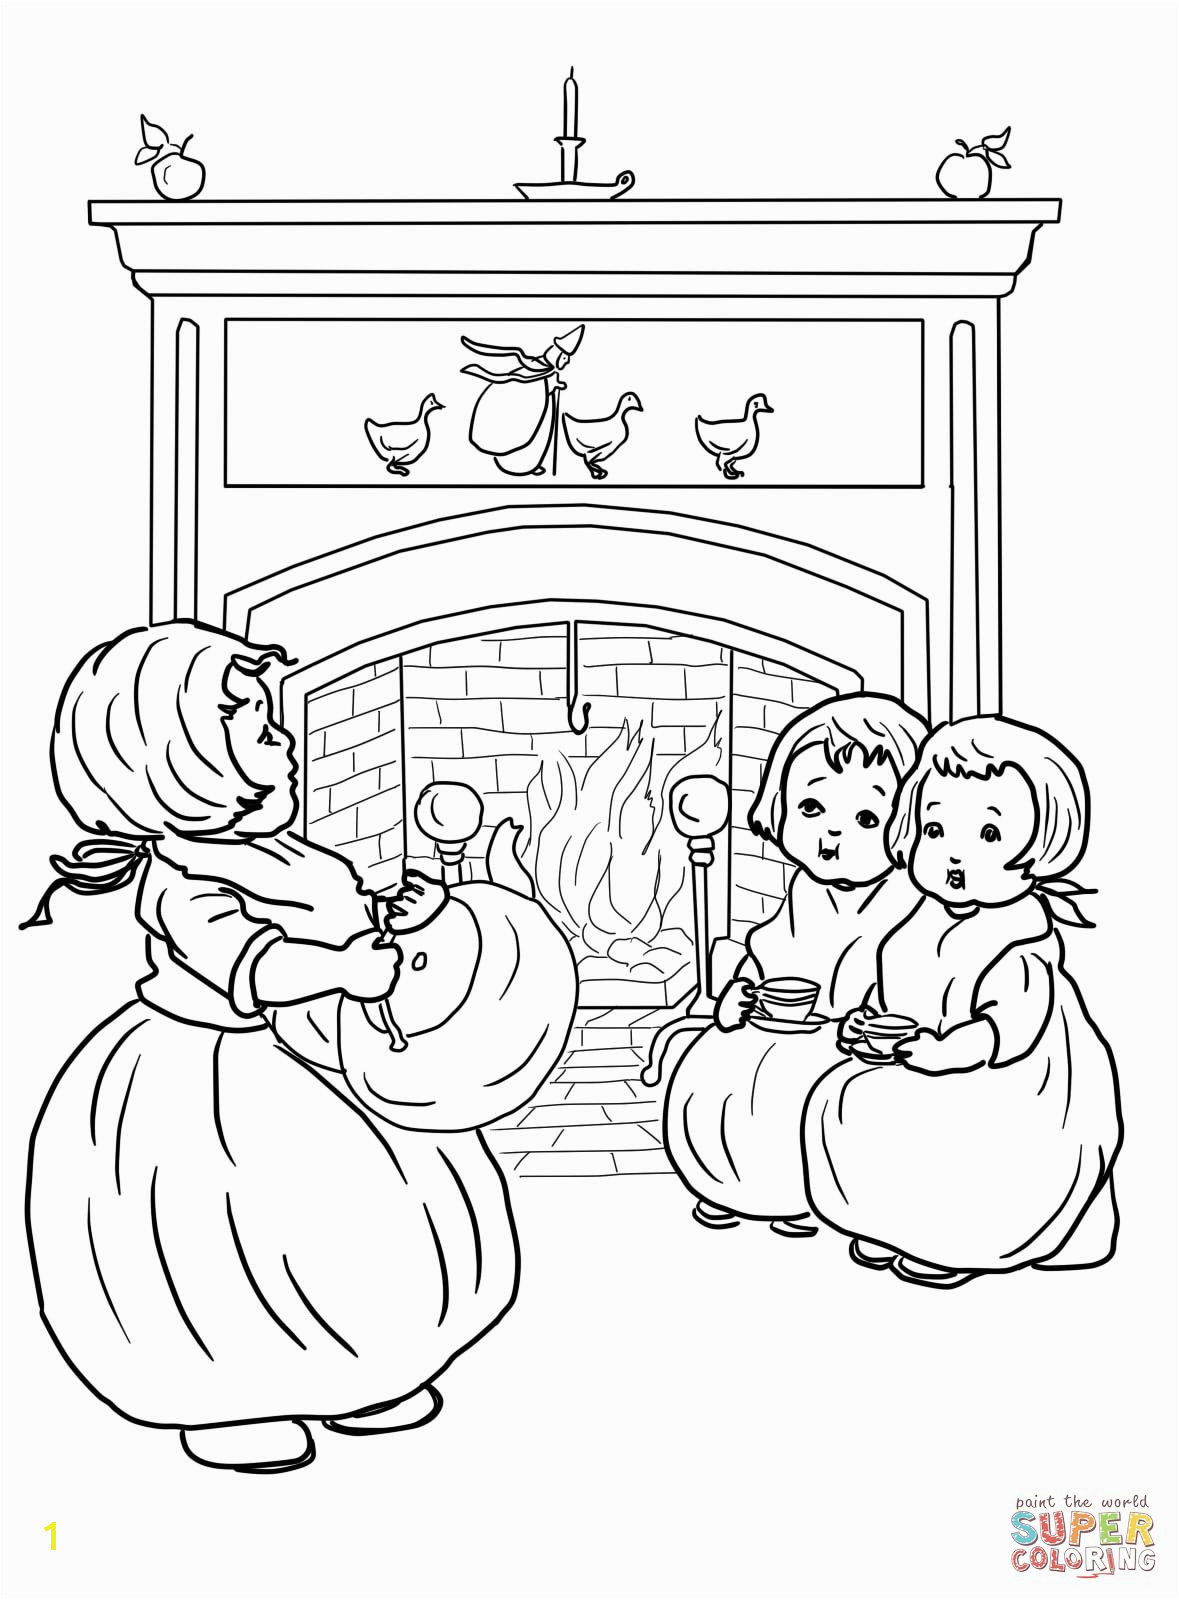 Polly Put the Kettle on Nursery Rhyme Coloring page Printable Crafts Free Printables Mary